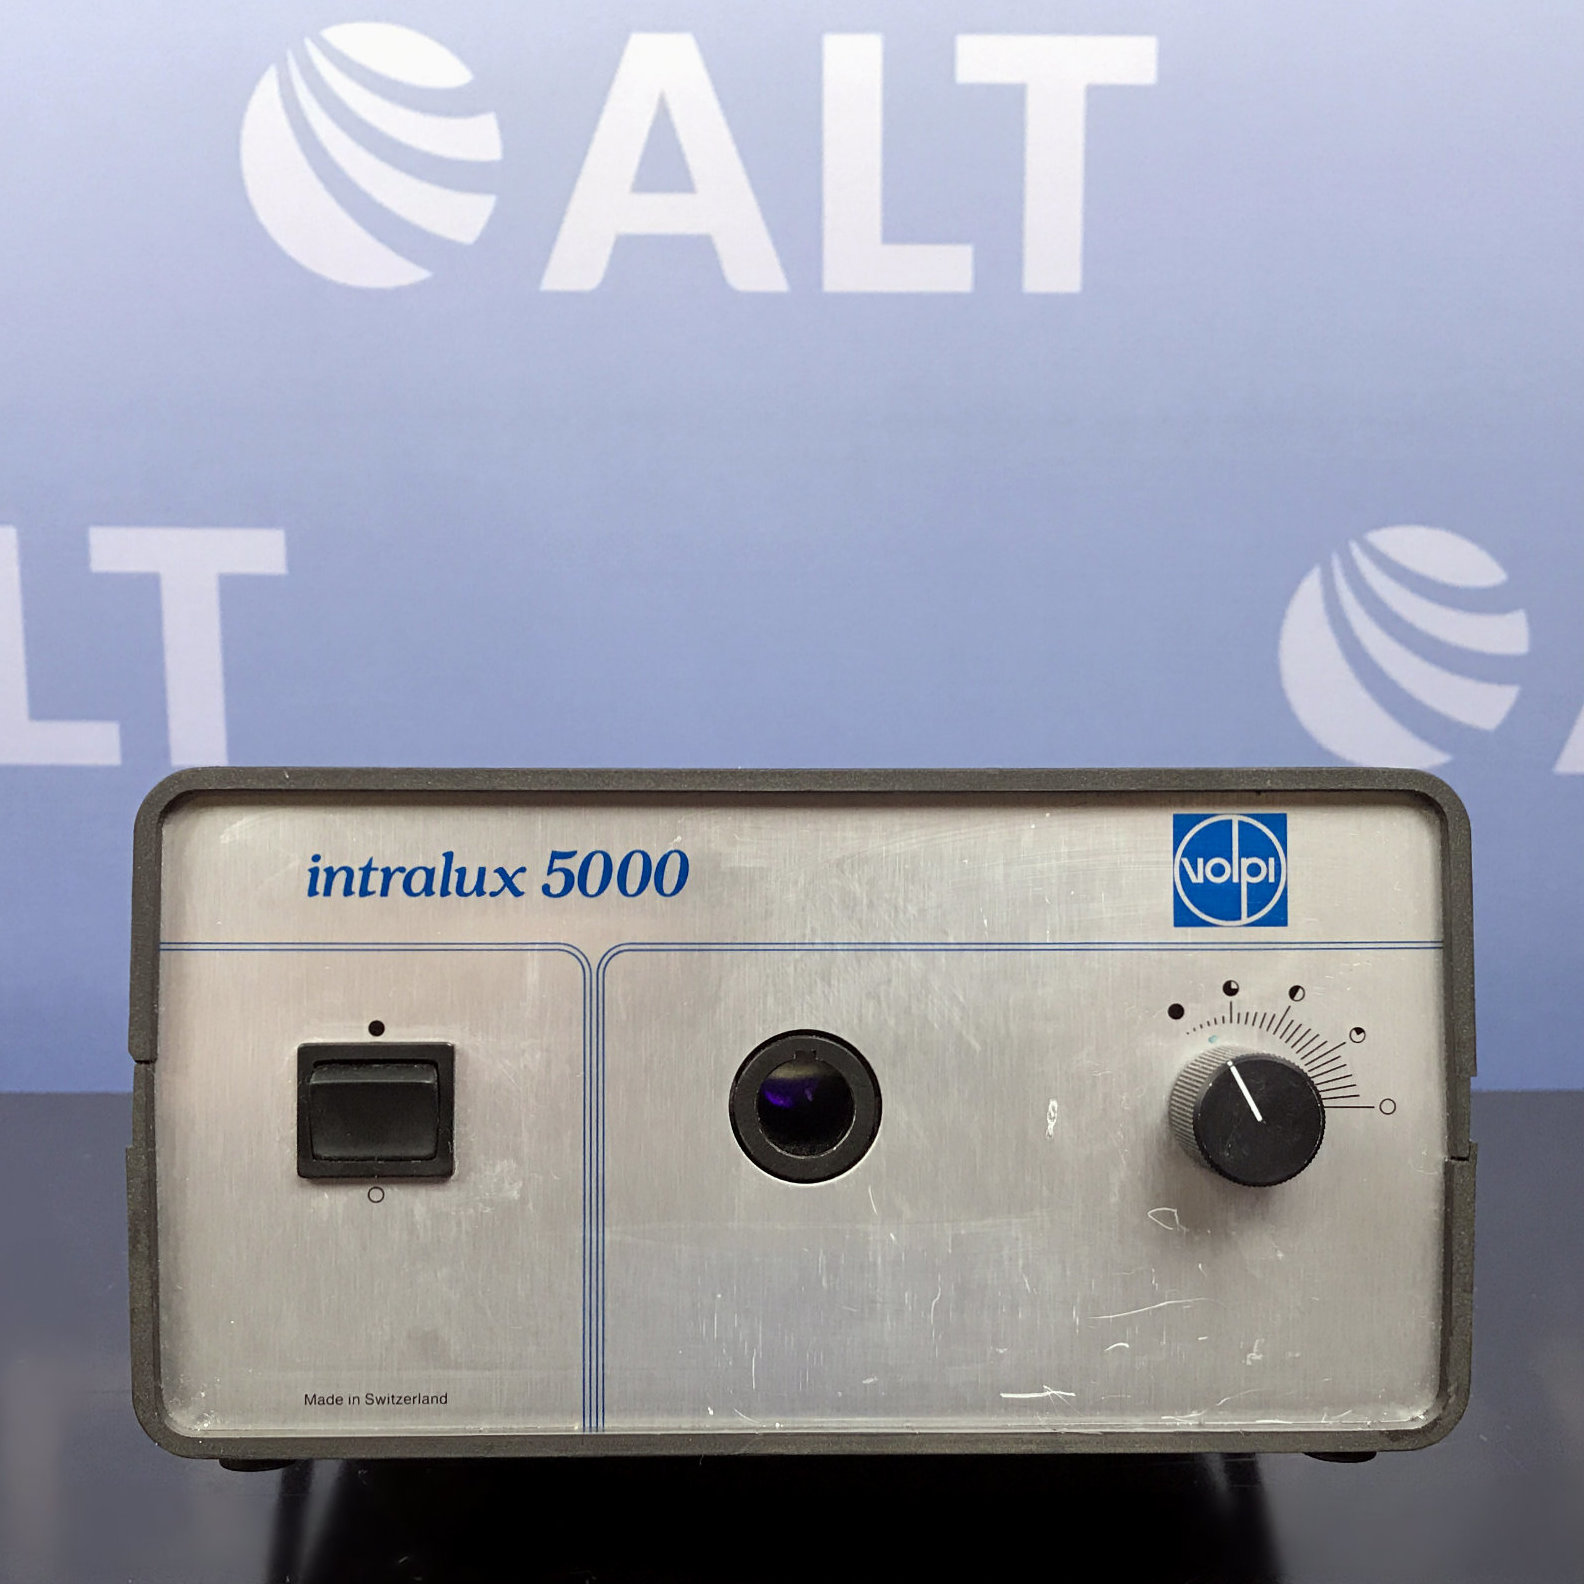 VOLPI Intralux 5000 Fiber Optical Light Source Image